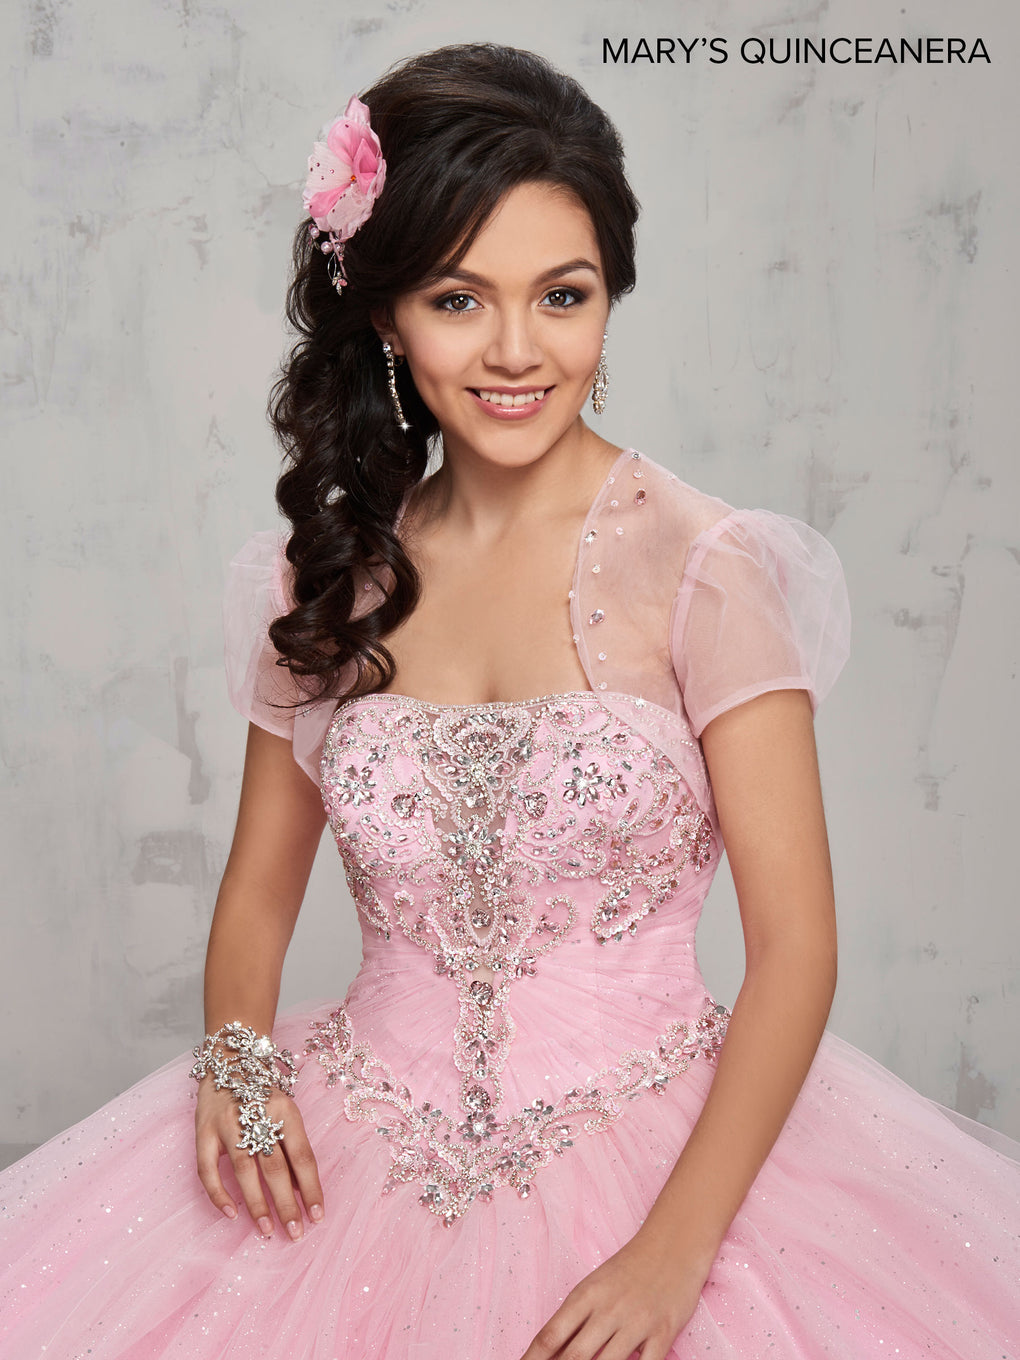 Marys Quinceanera Dresses in Pink, Lilac, Light Blue, or White Color